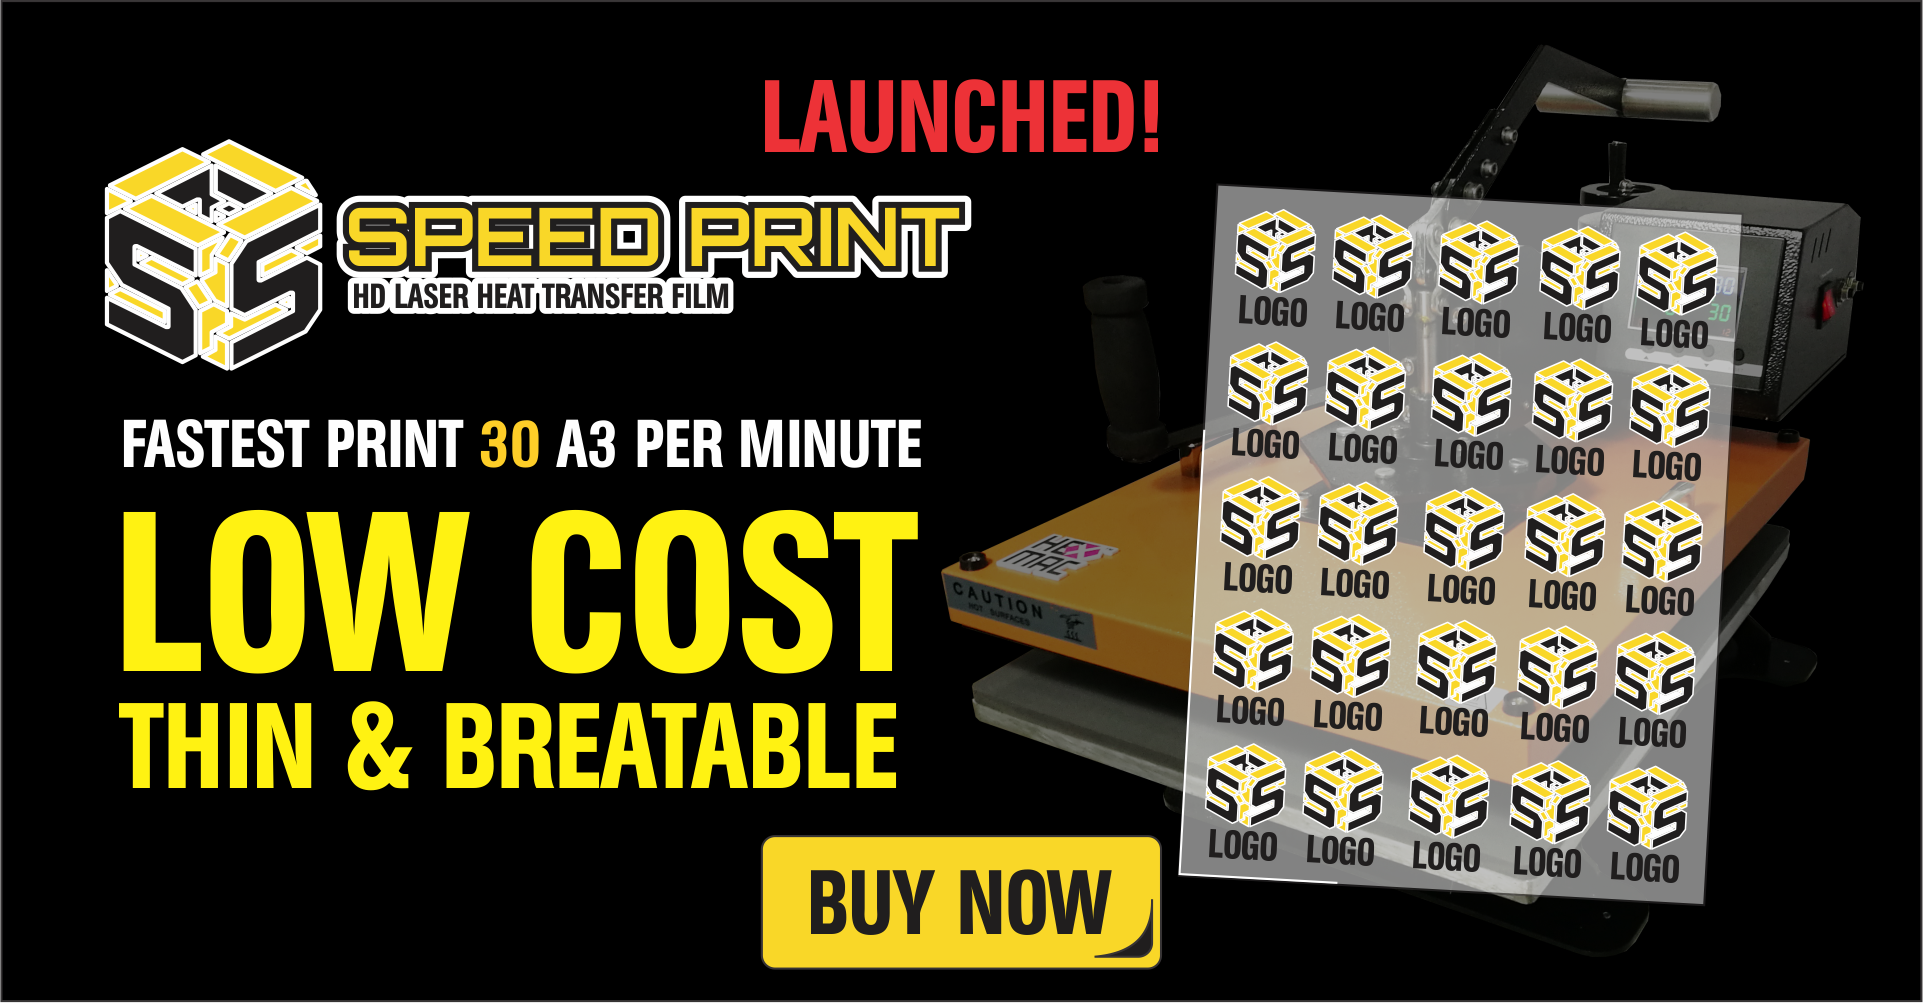 ABOUT SPEED PRINT HD FILM